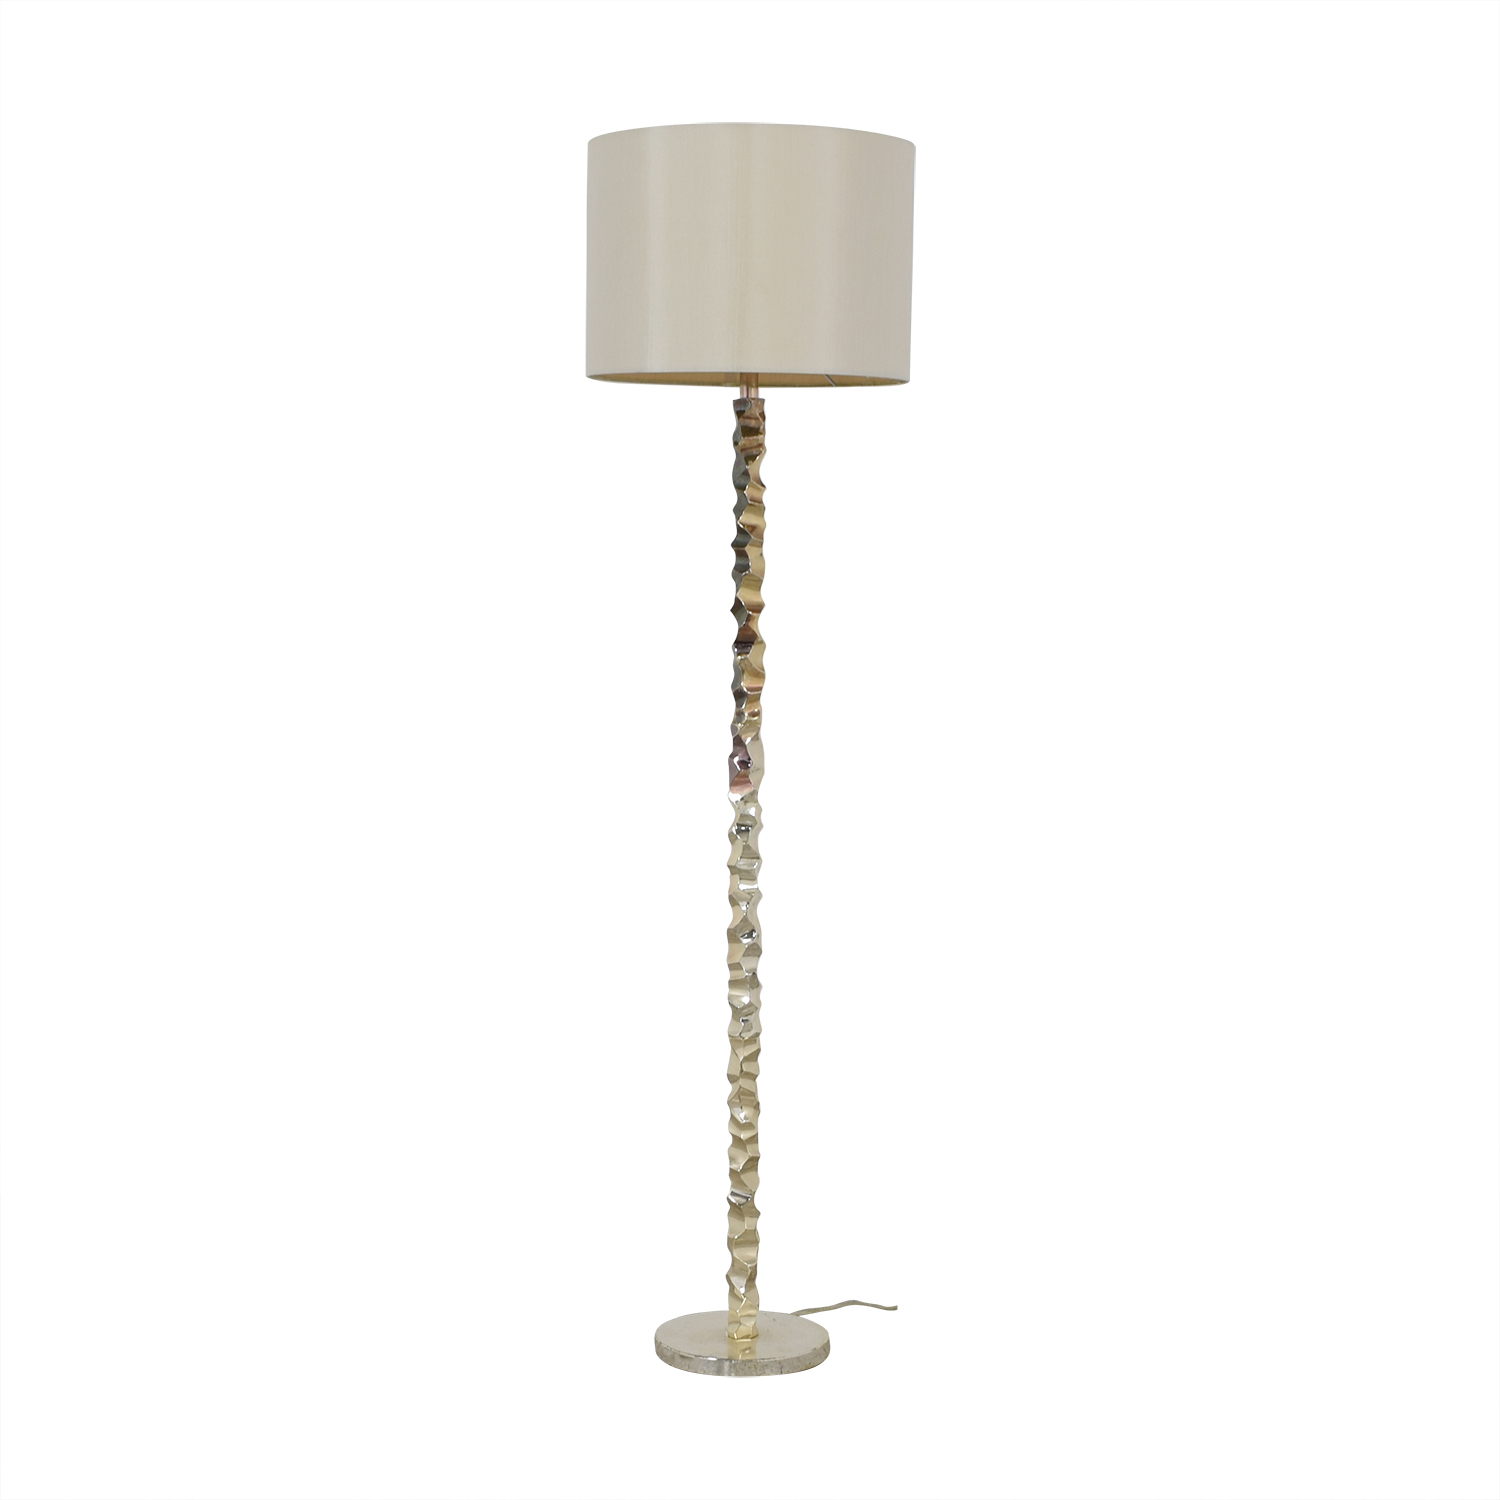 Metal Floor Lamp used